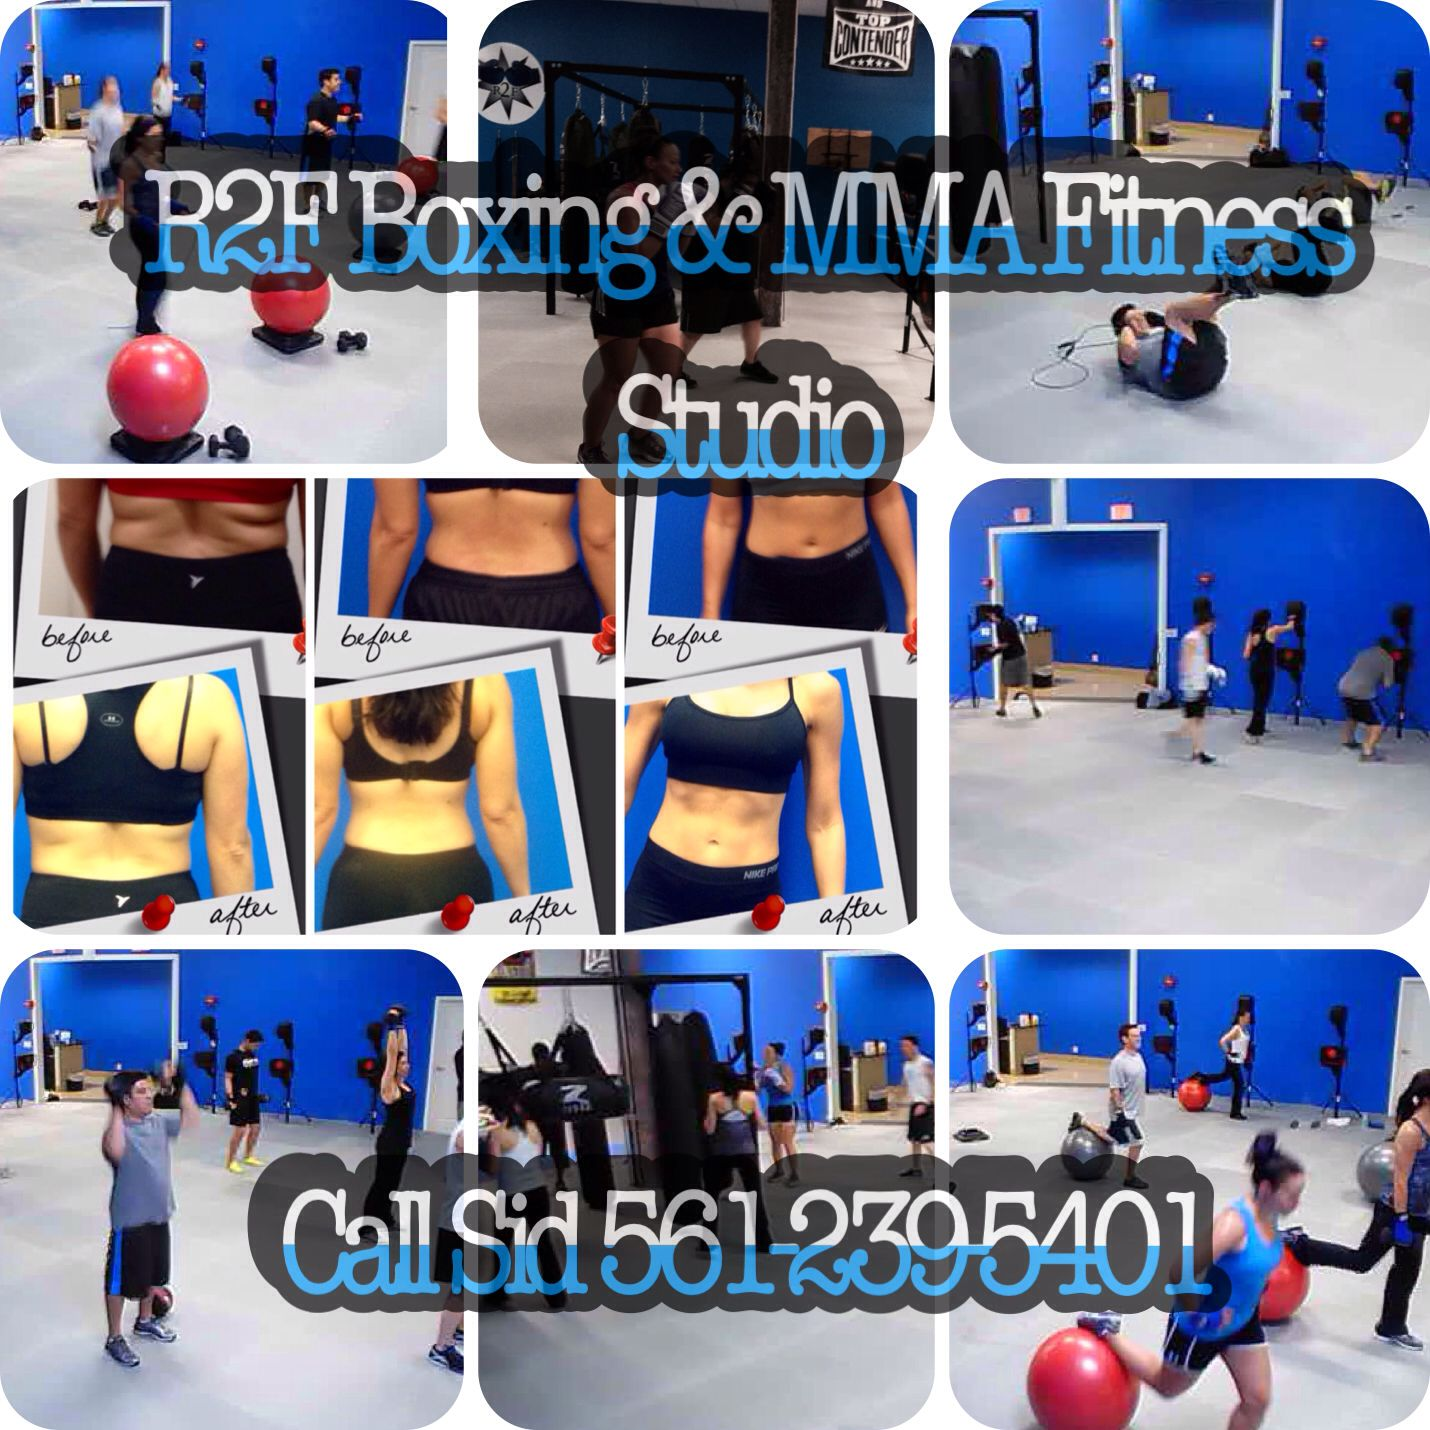 R2F Boxing & MMA Fitness programs are beginner friendly ...